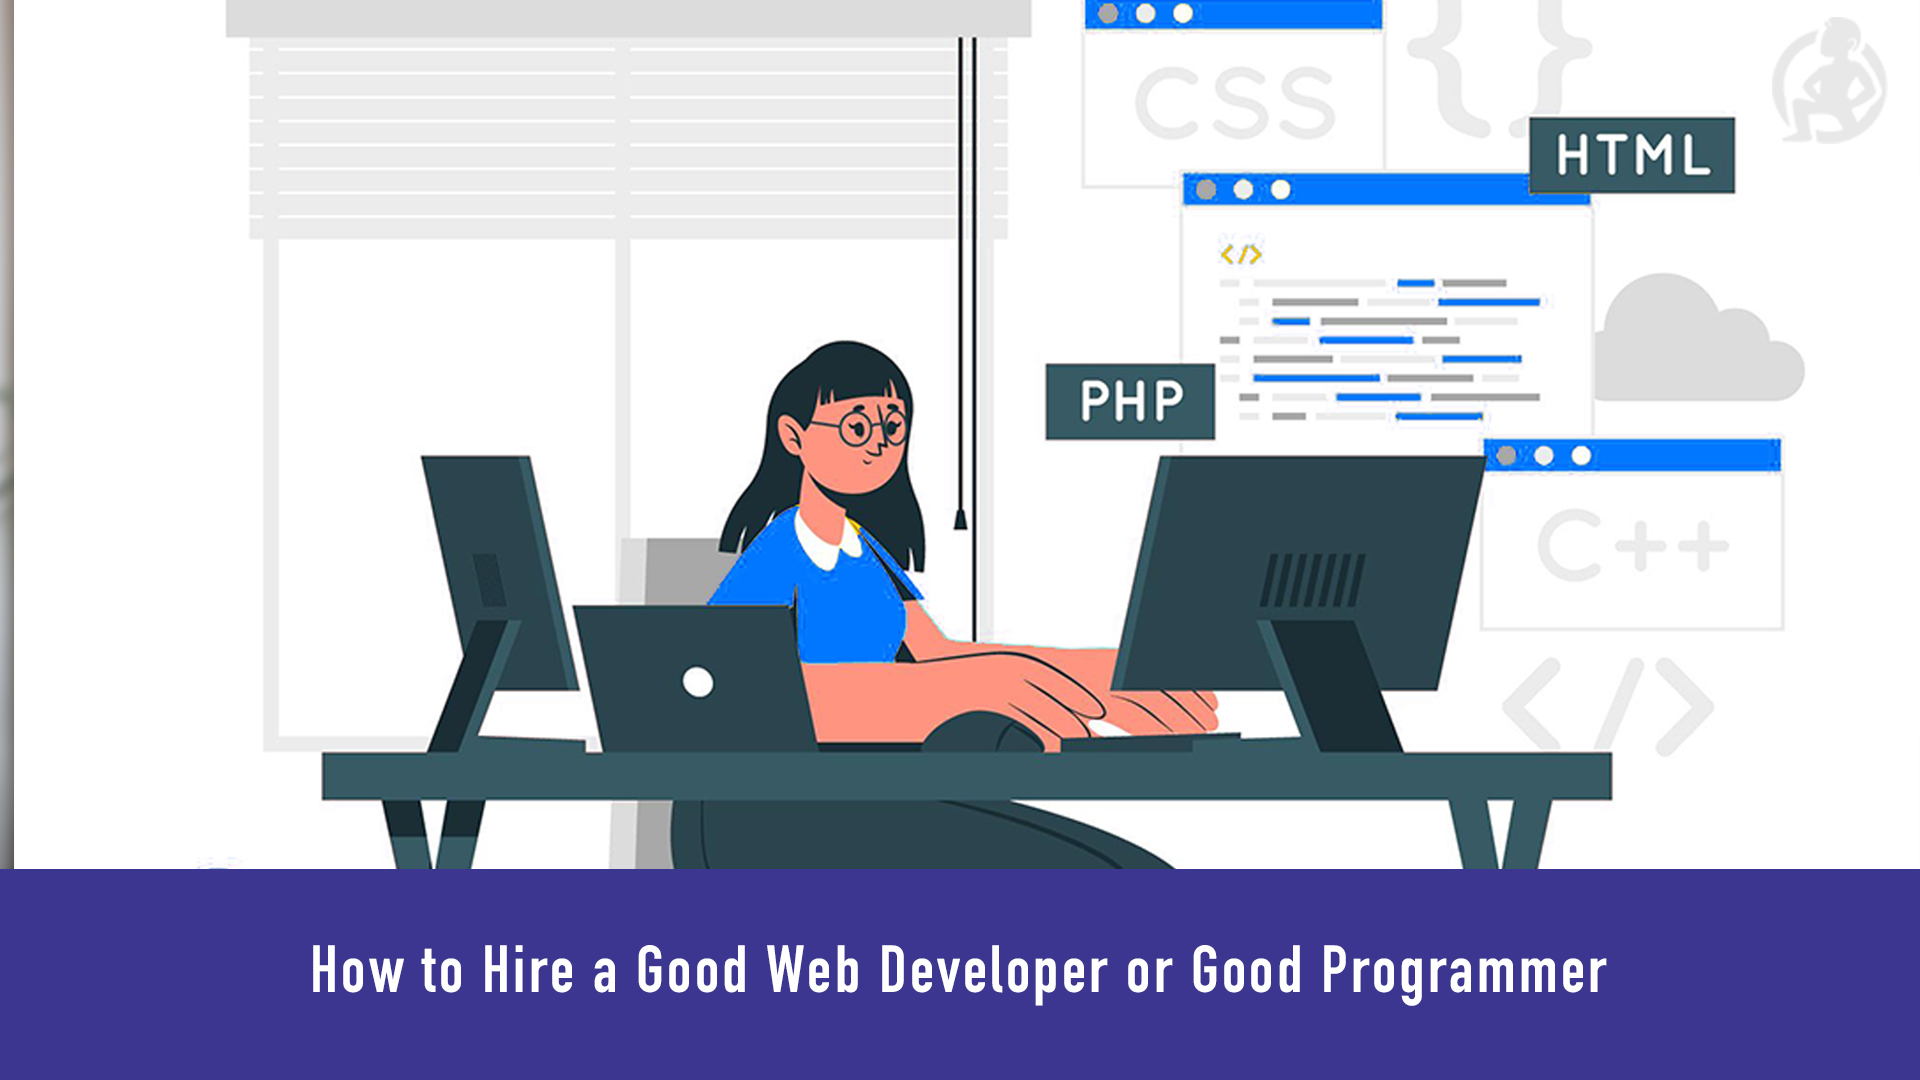 How to Hire a Good Web Developer or Good Programmer – Practical Advice